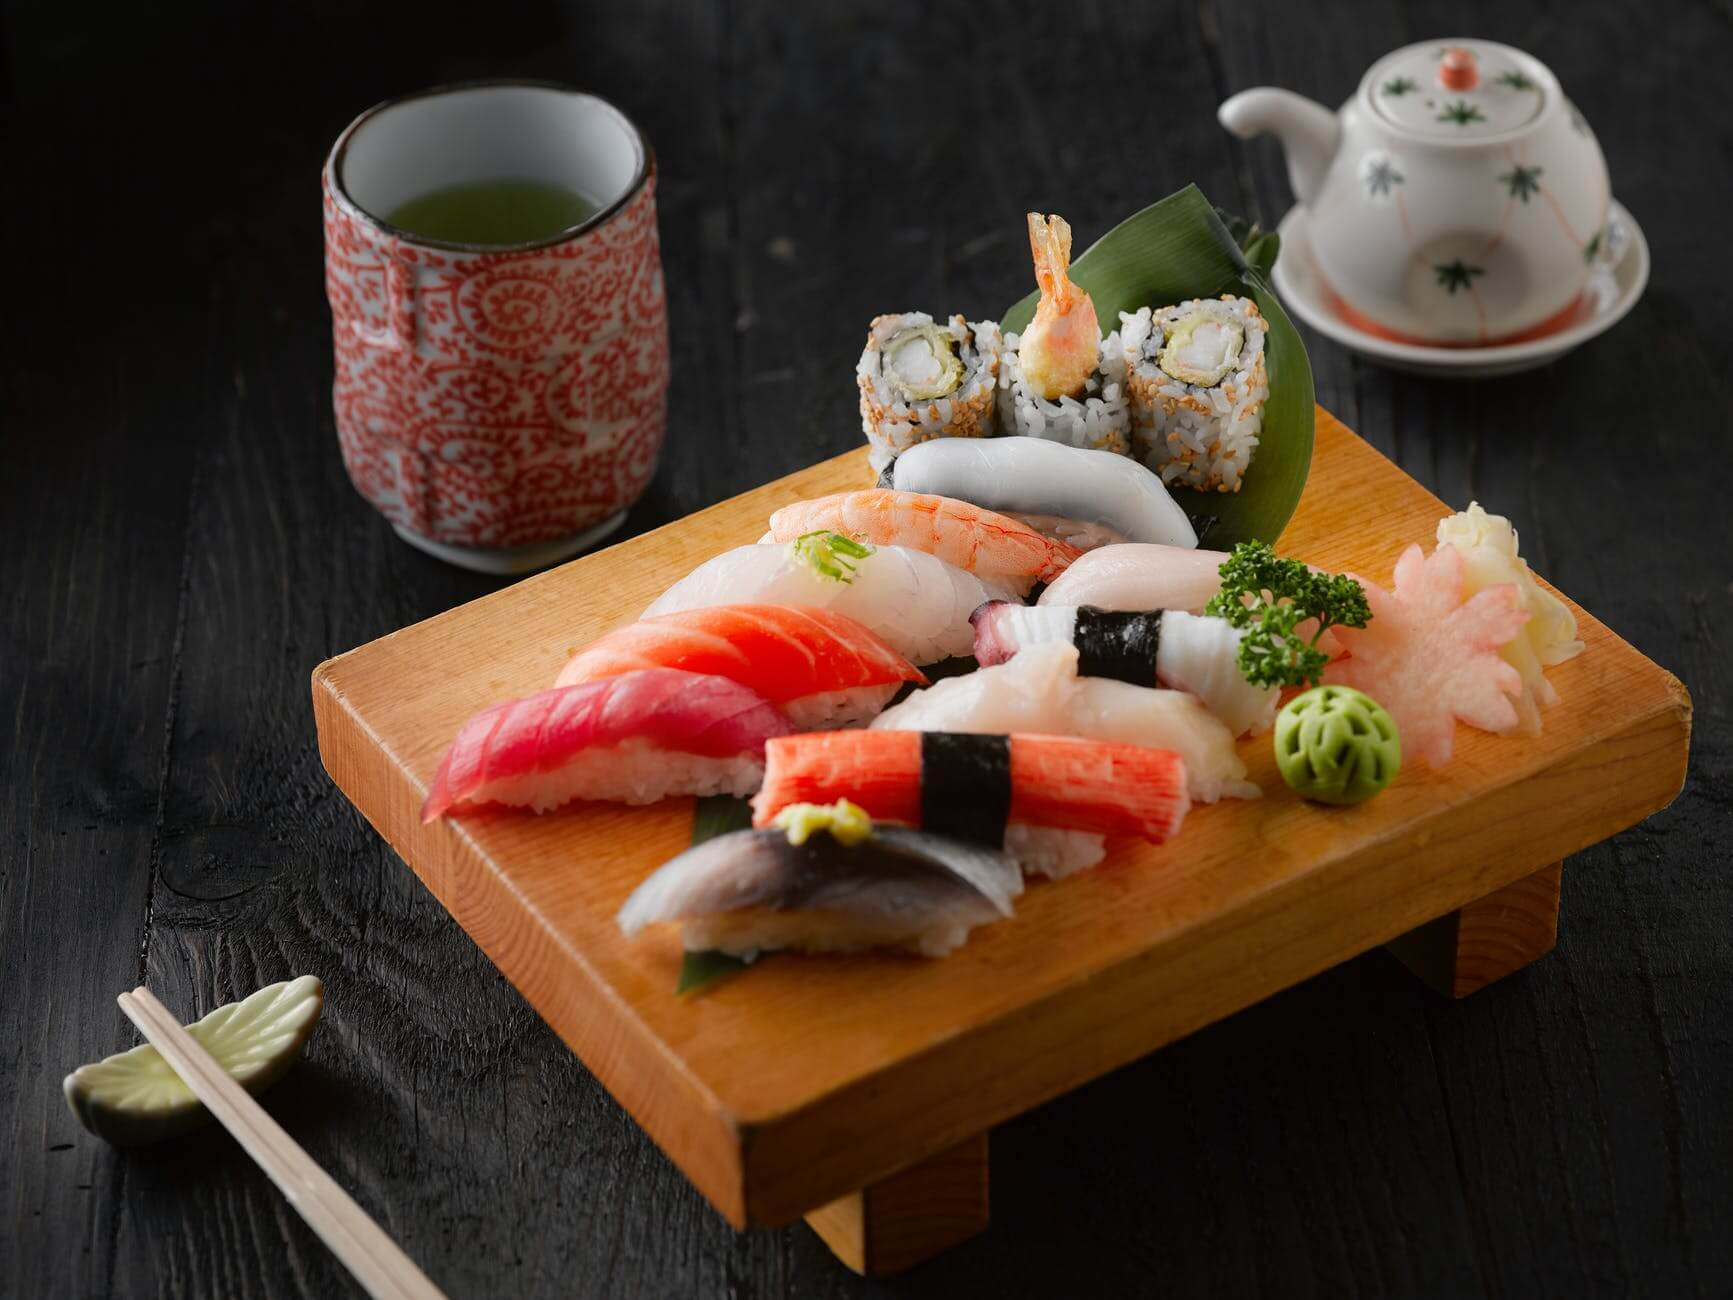 Japanese sushi on brown wooden board